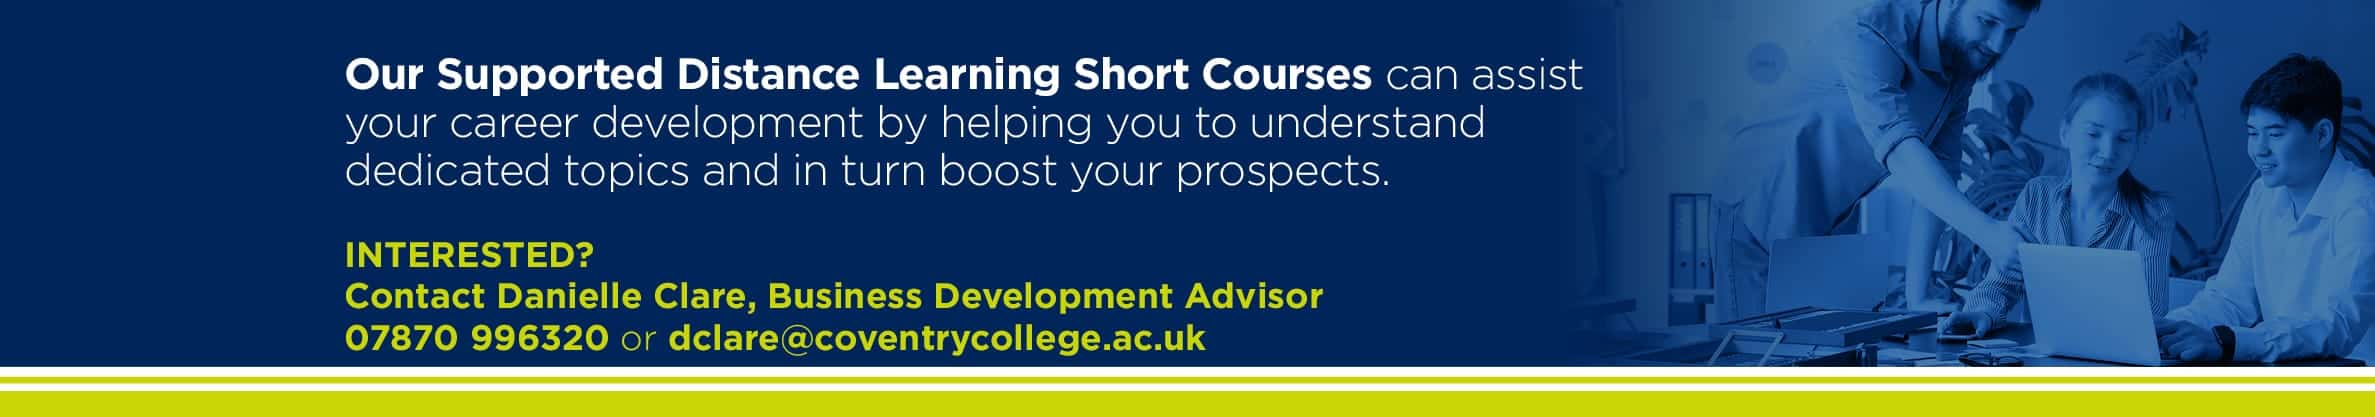 Our Supported Distance Learning Short Courses can assist your career development by helping you to understand dedicated topics and in turn boost your prospects.